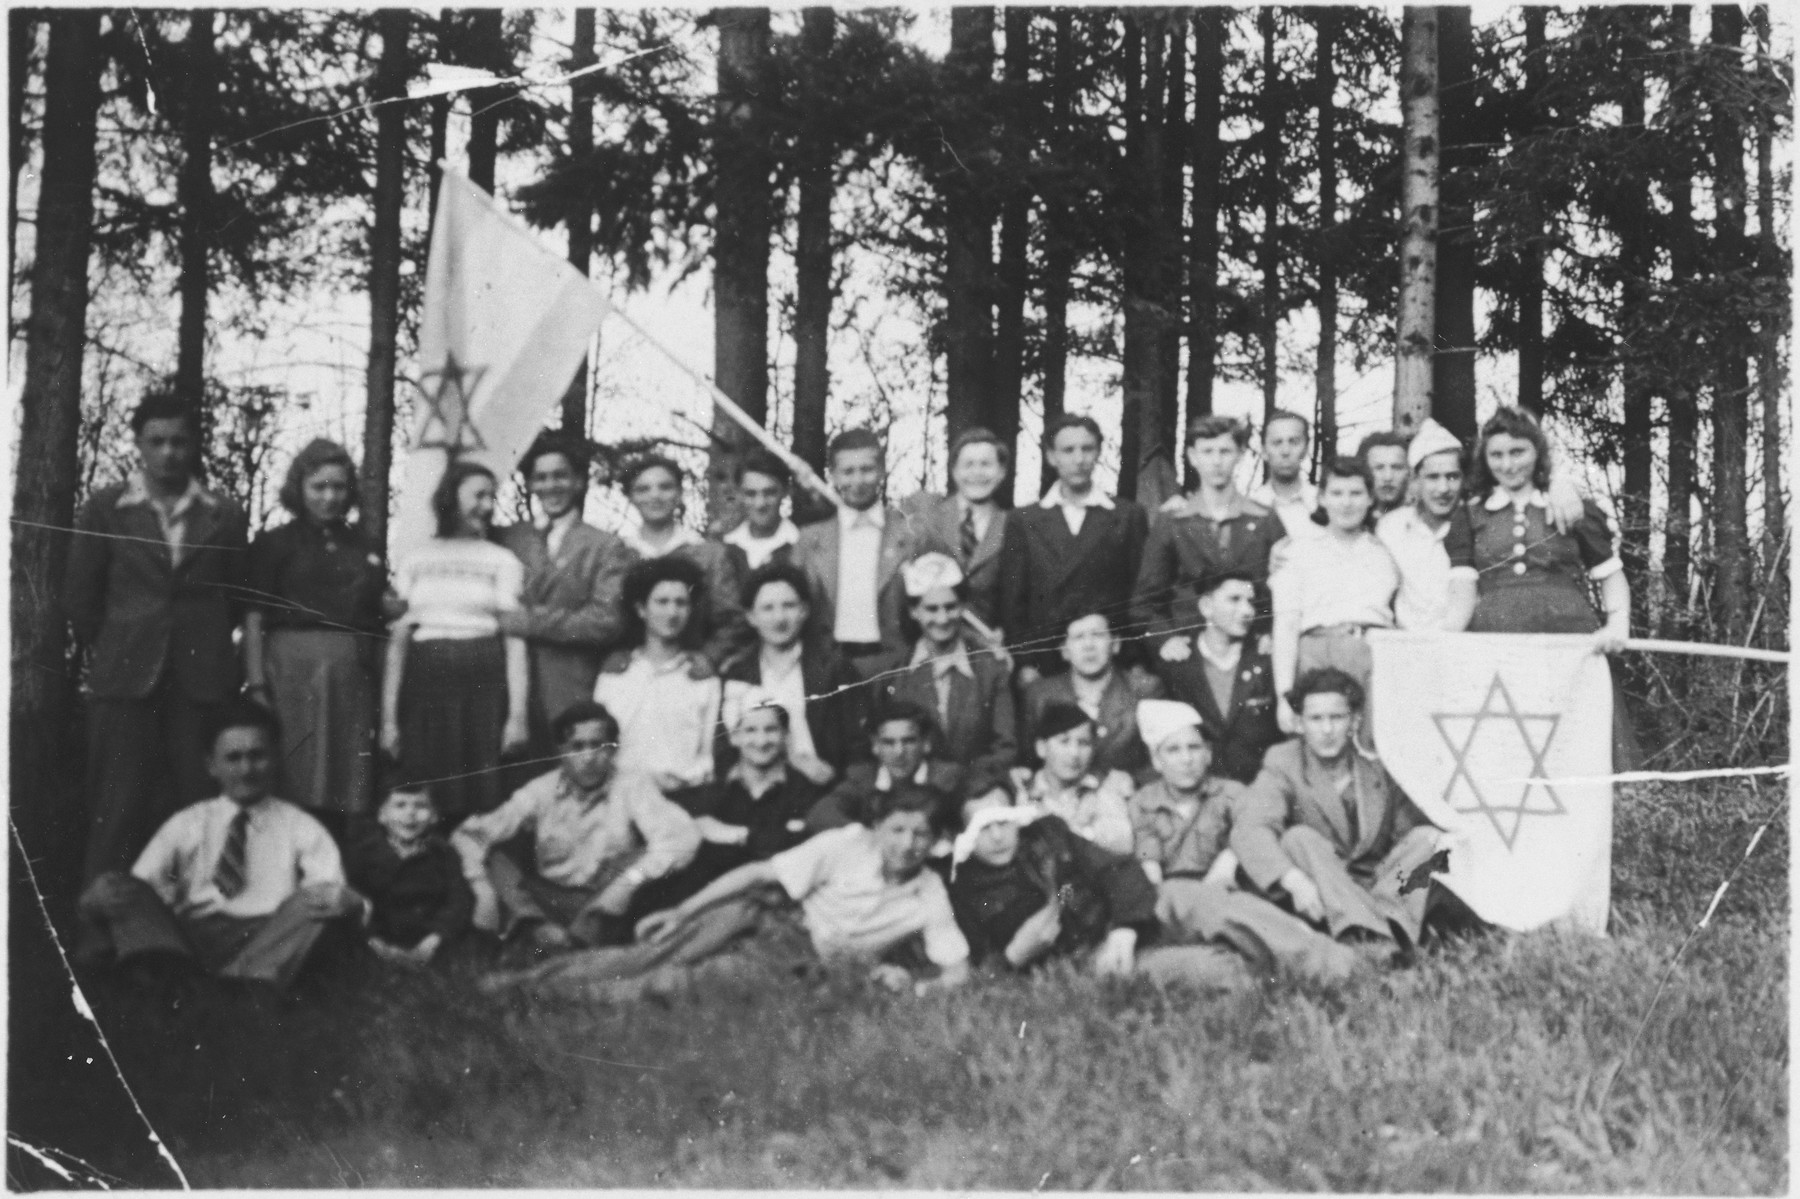 Jewish children from Kloster Indersdorf go on an excursion in the woods while carrying Zionist flags.